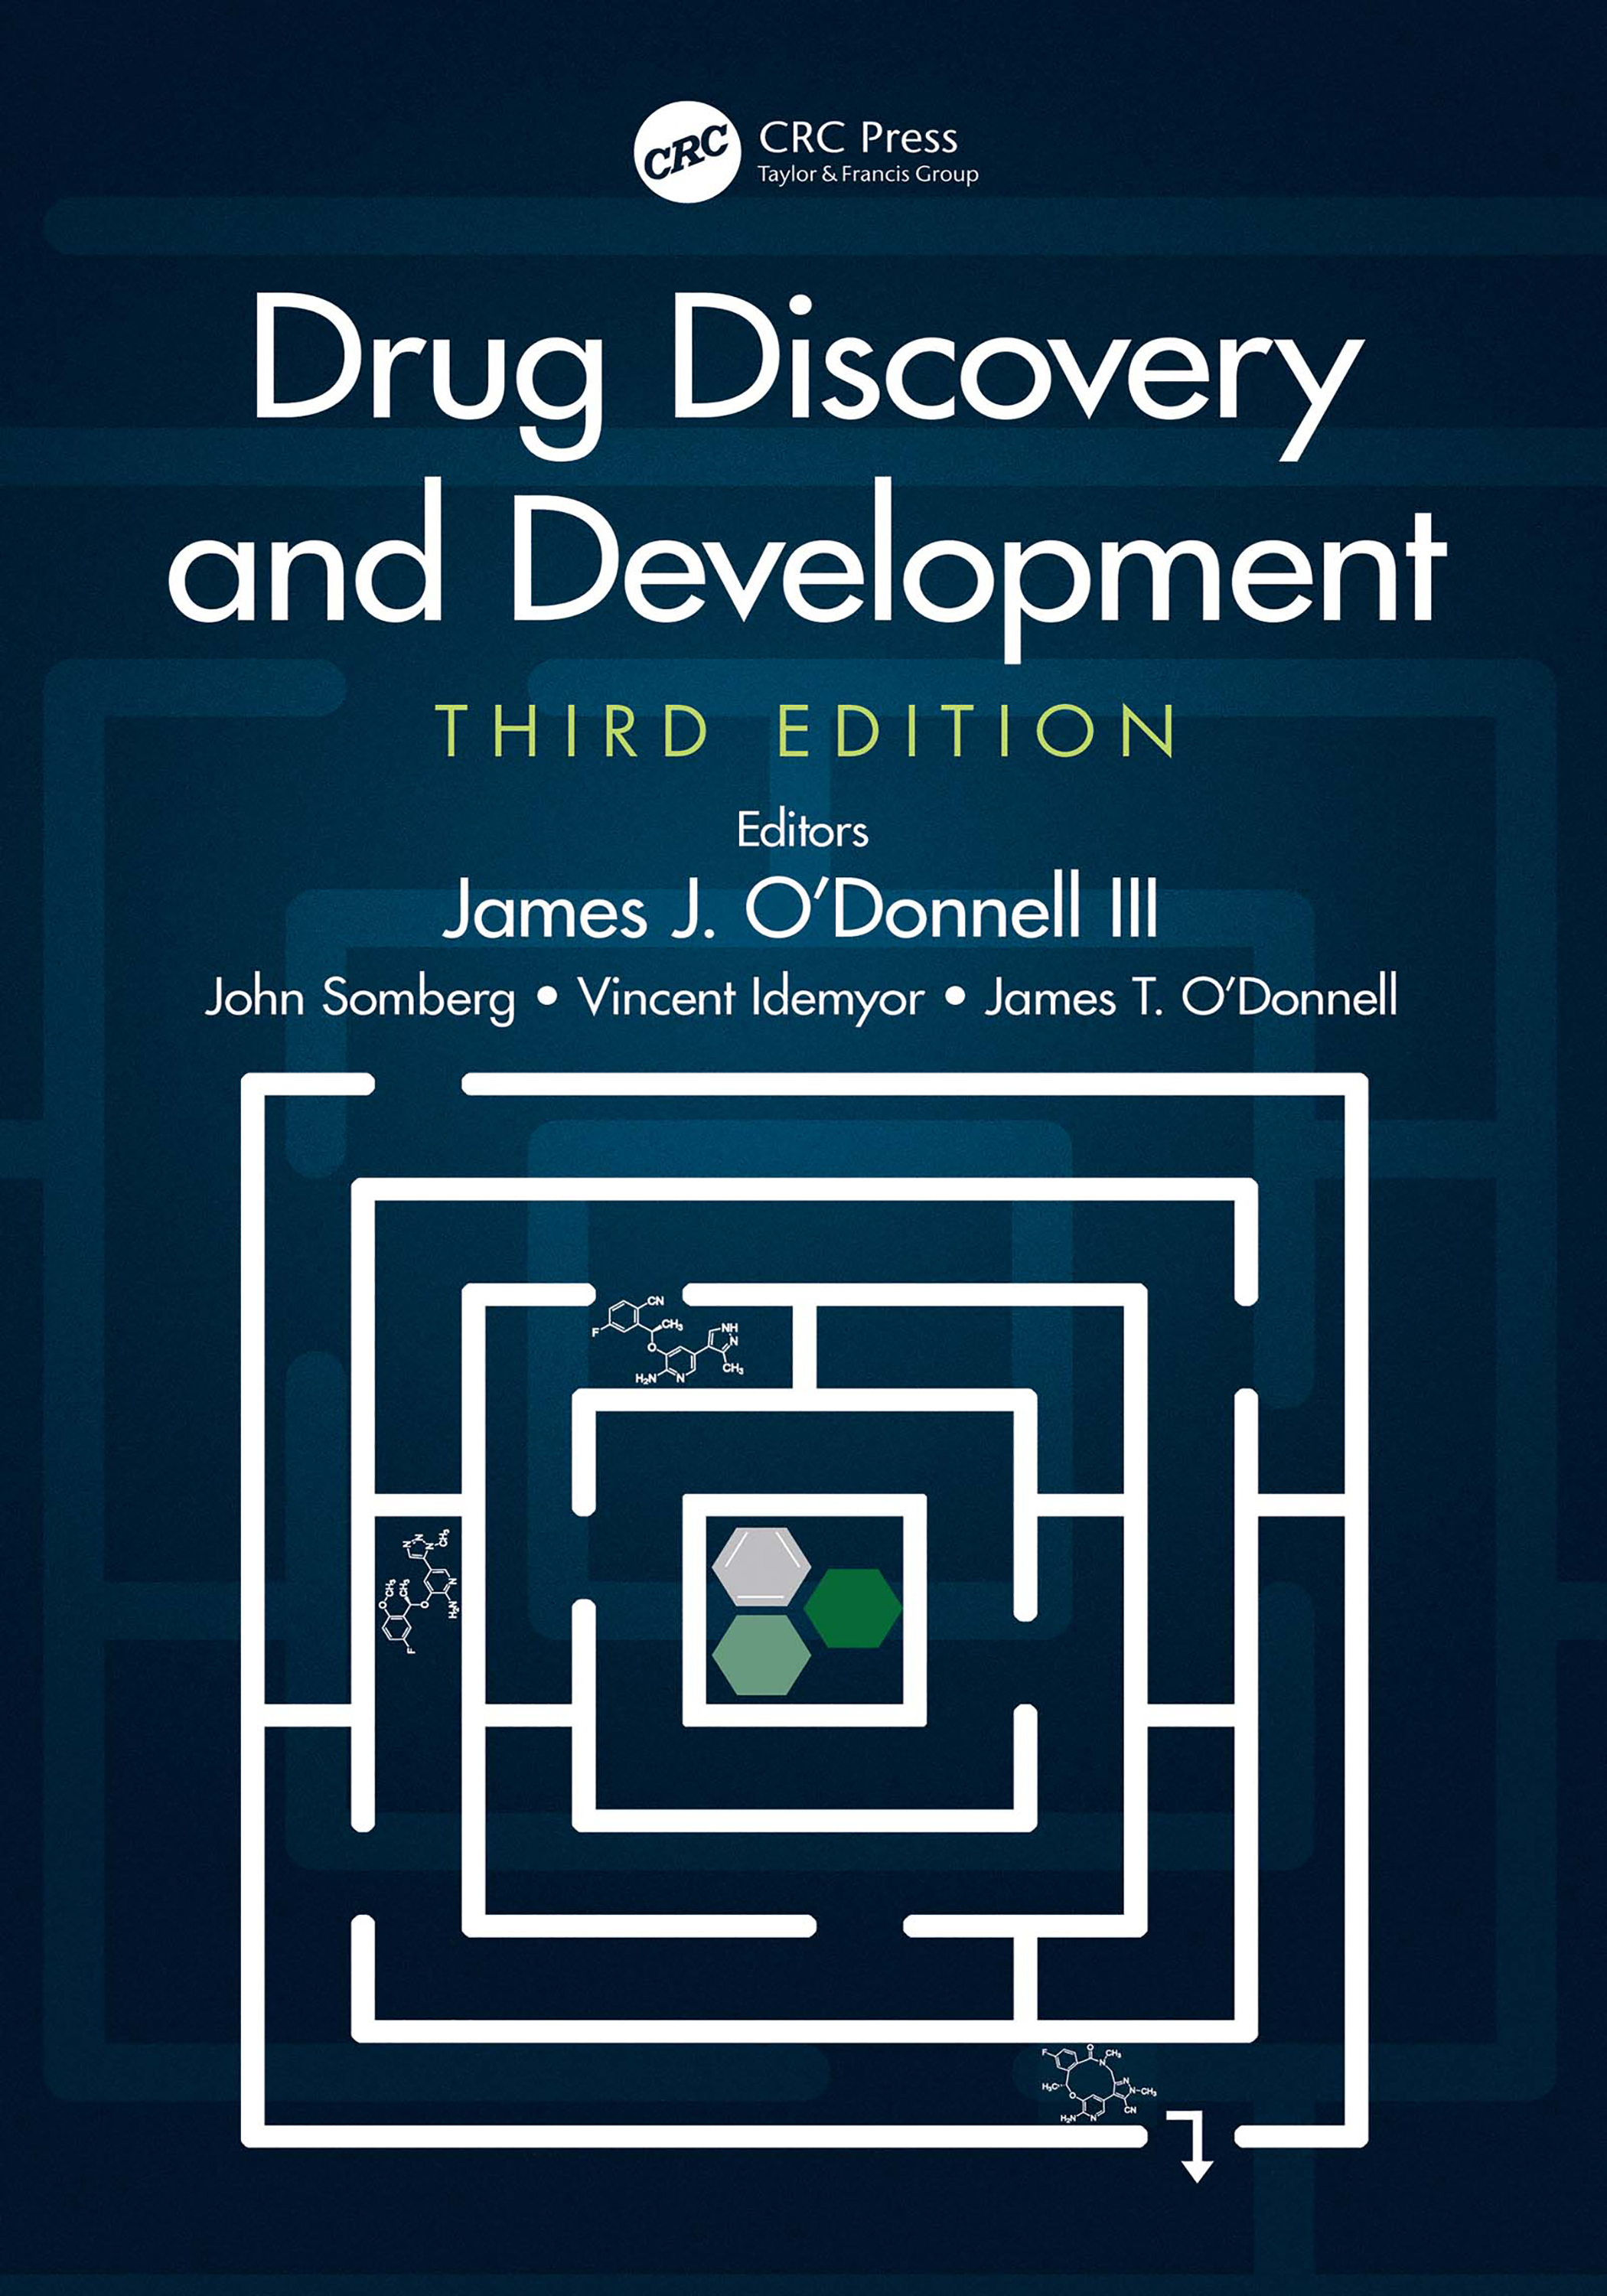 Discovery and Early Development of the Next-Generation ALK Inhibitor, Lorlatinib (18)